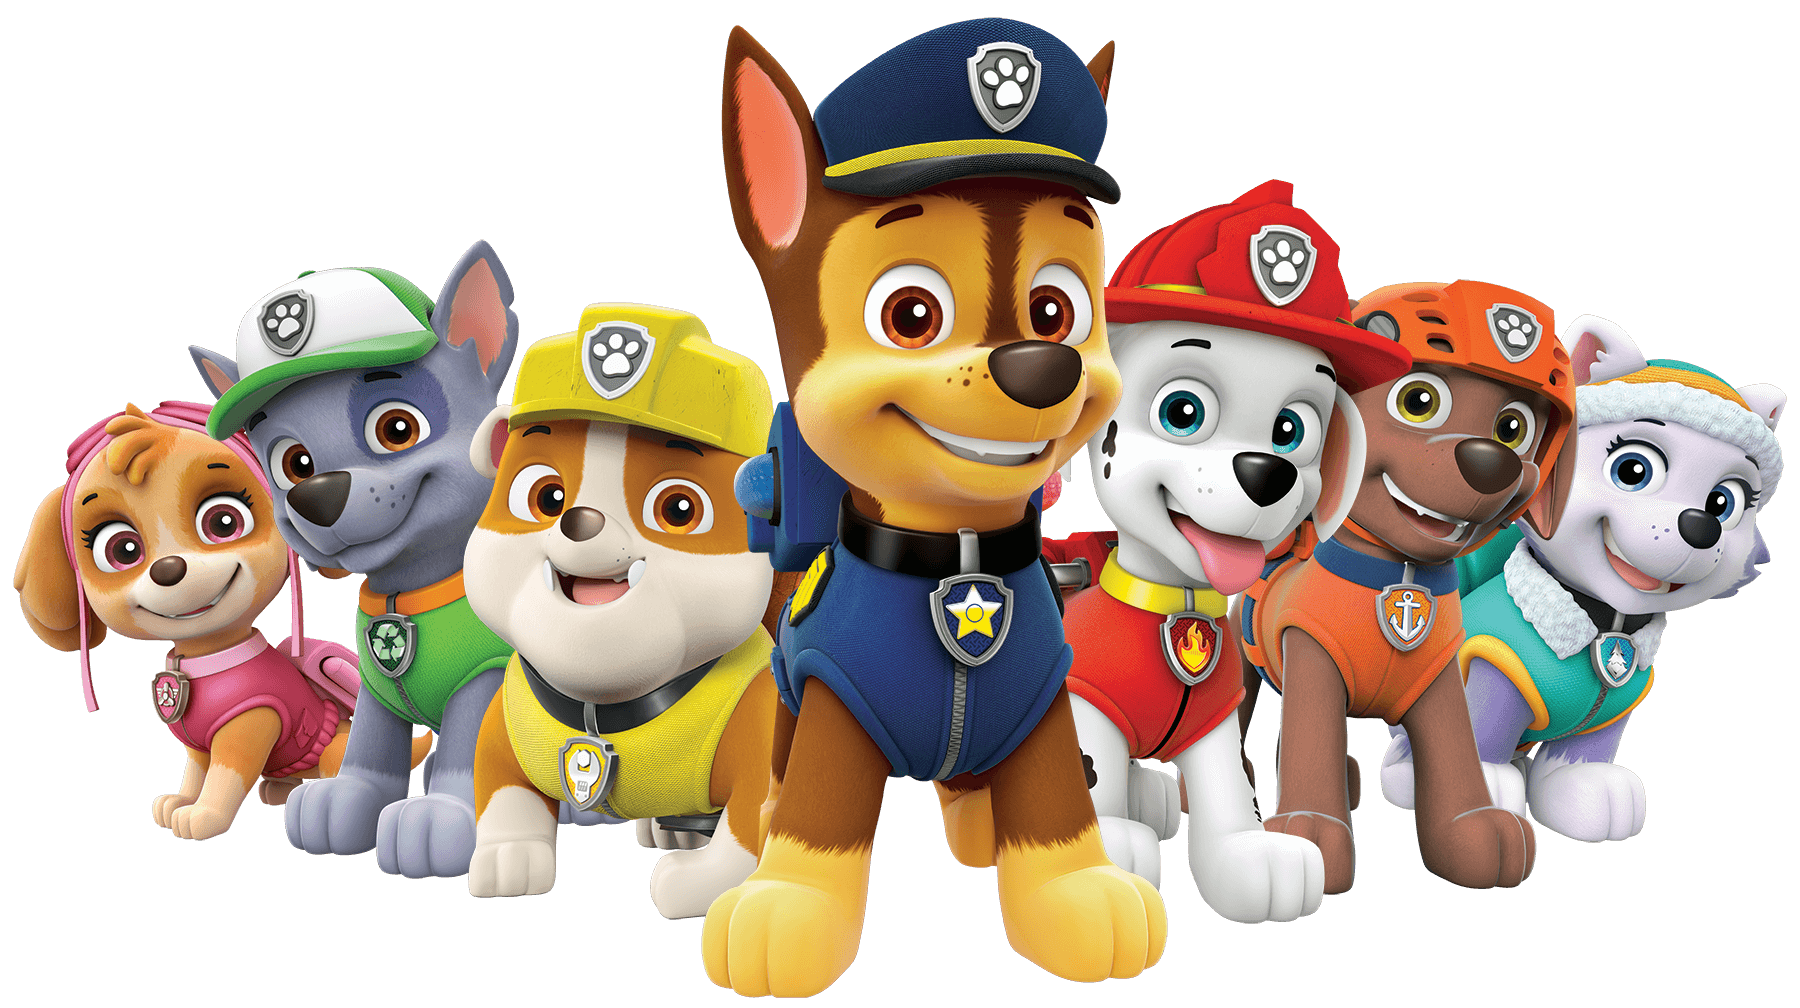 Paw patrol png images. Marshall silhouette at getdrawings